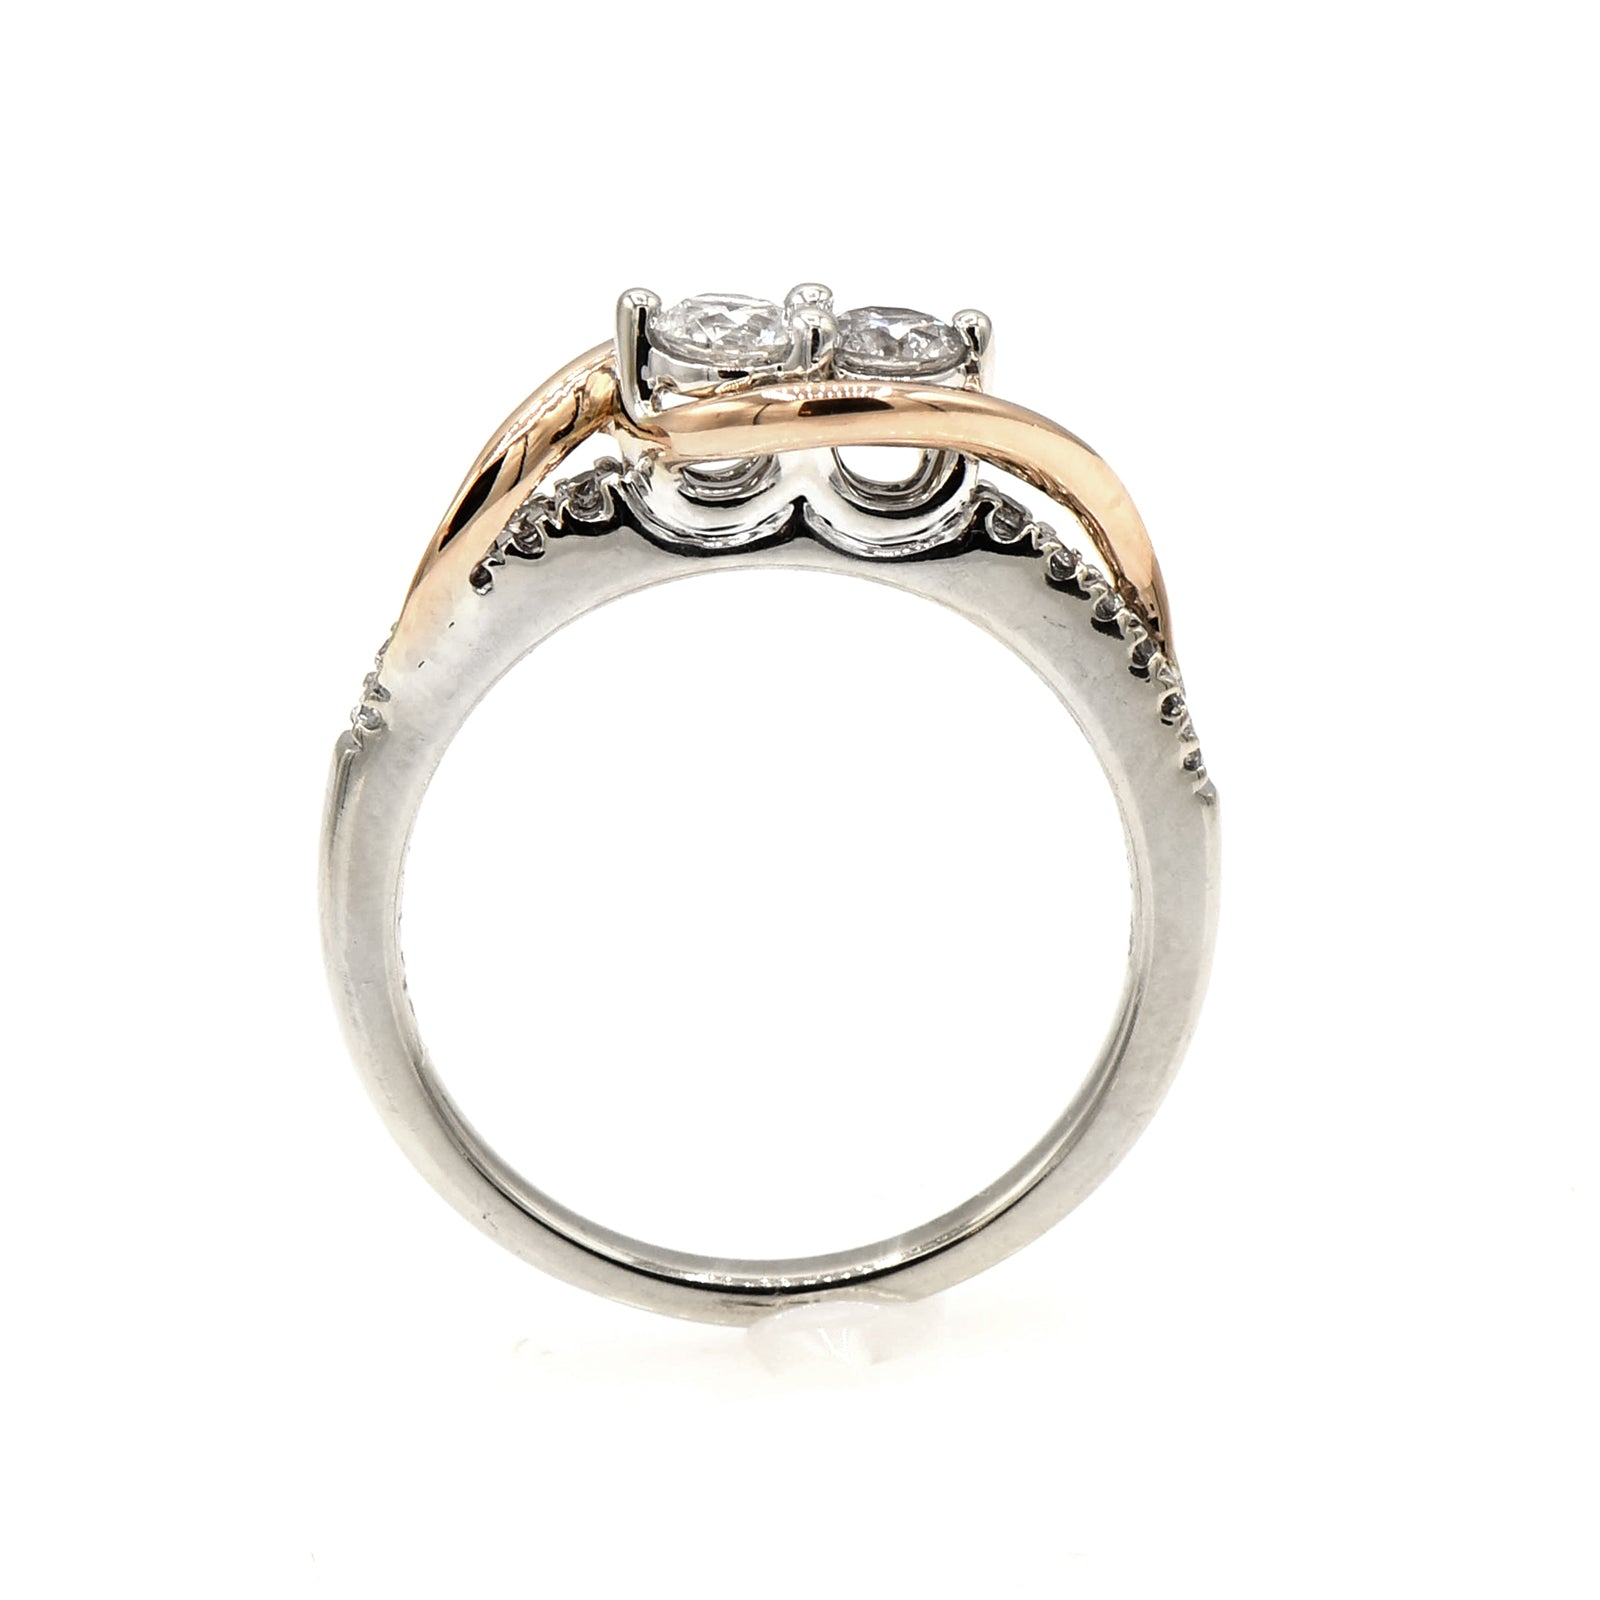 Ever Us 2 Diamond Ring with Rose Gold Accented Diamond Mounting-1